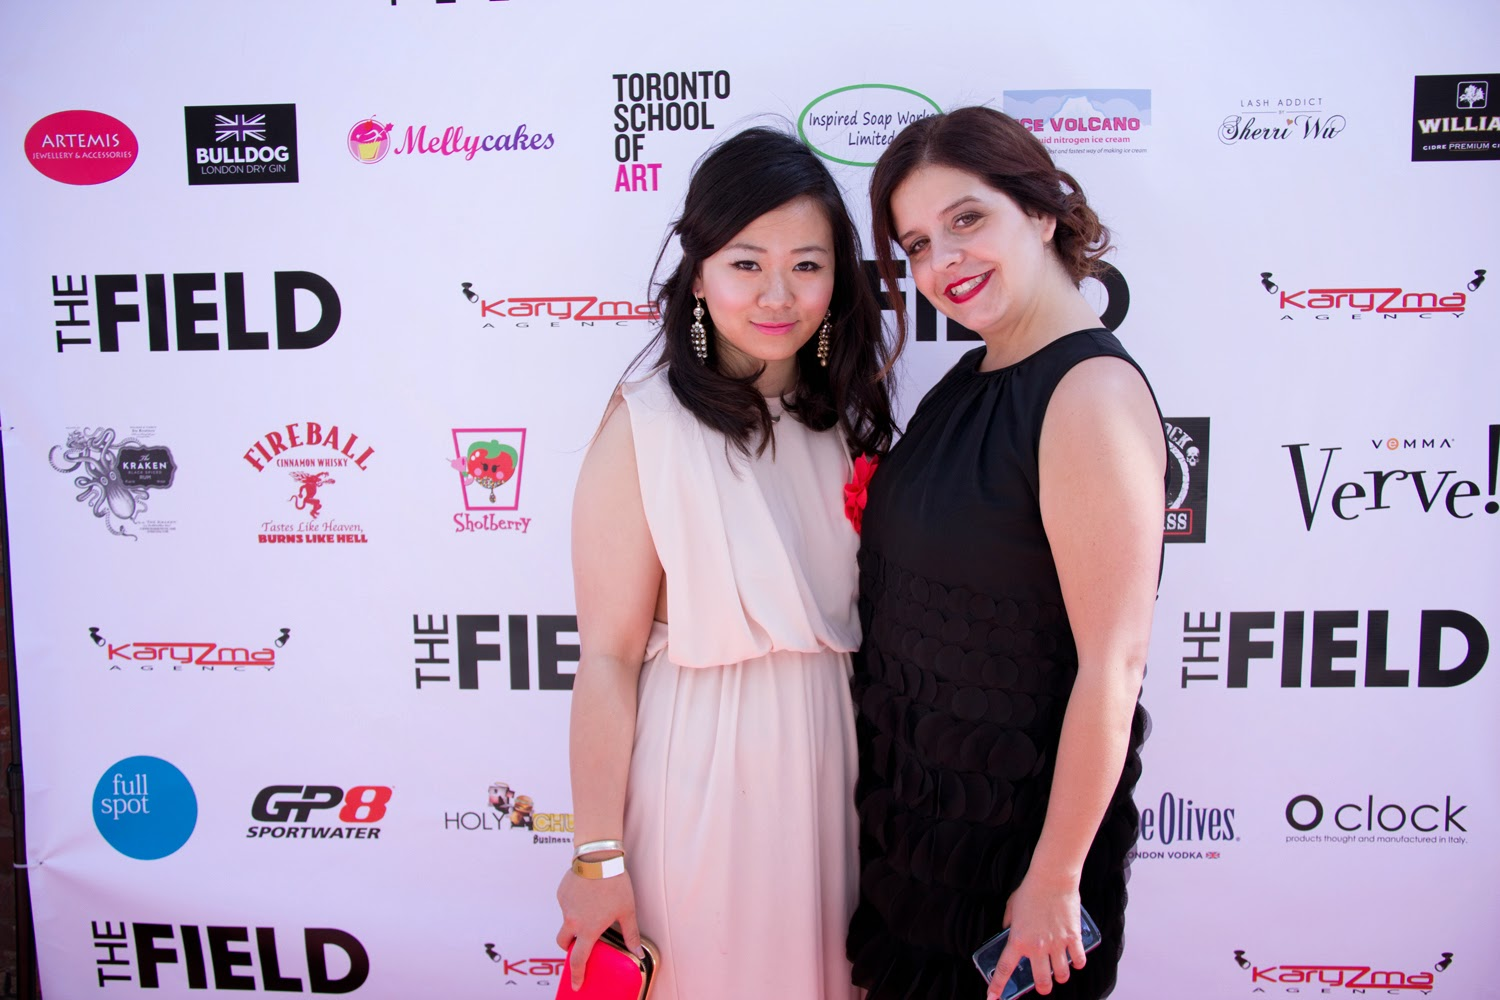 The-fields-party, much-music-video-award-2014, runway